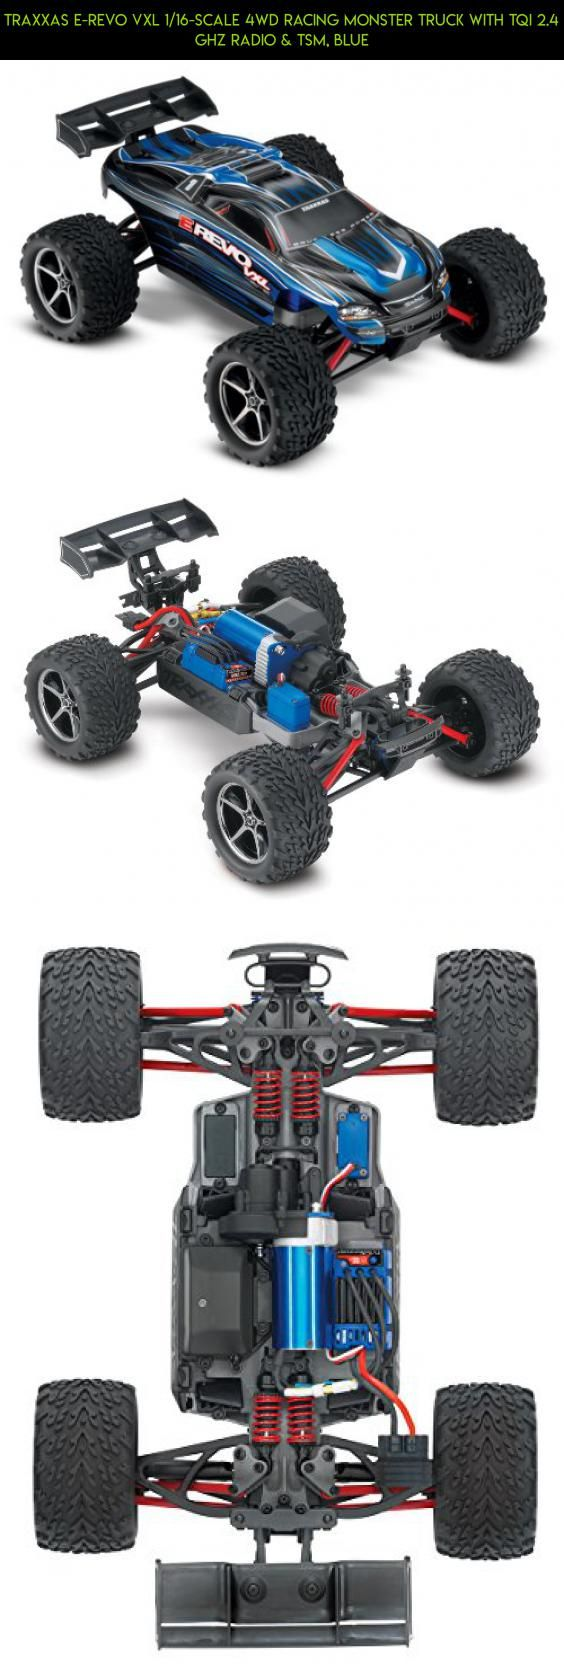 Traxxas E-Revo VXL 1/16-Scale 4WD Racing Monster Truck with TQi 2.4 GHz Radio & TSM, Blue #parts #shopping #plans #drone #traxxas #fpv #revo #products #gadgets #mini #tech #camera #technology #e #racing #kit